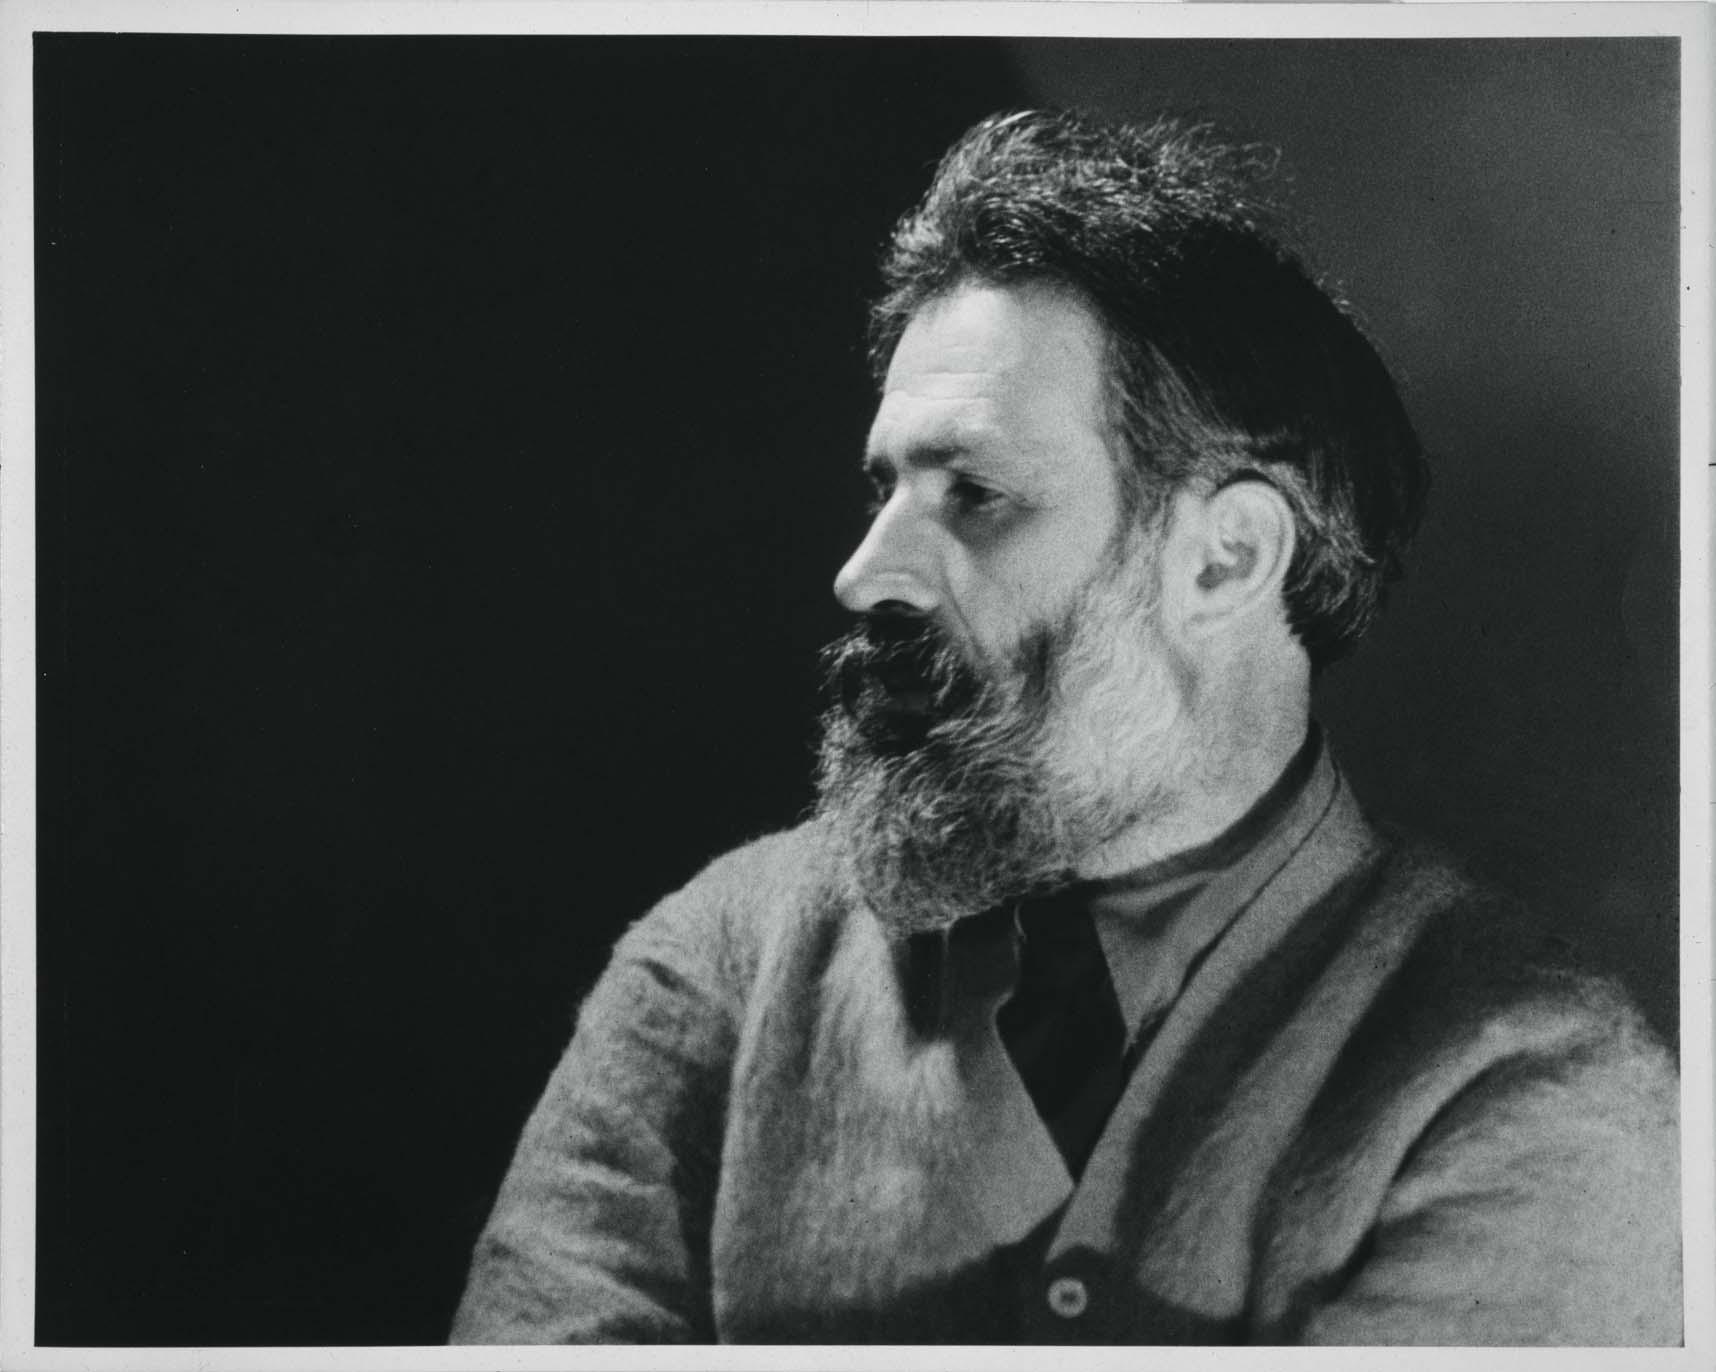 a biography of emmanuel radnitzky in philadelphia Biography born emmanuel radnitzky, man ray grew up in america but spent the greater part of his life as an migr in paris working in several media, man ray's art includes painting, sculpture, collage, constructed objects and photography.